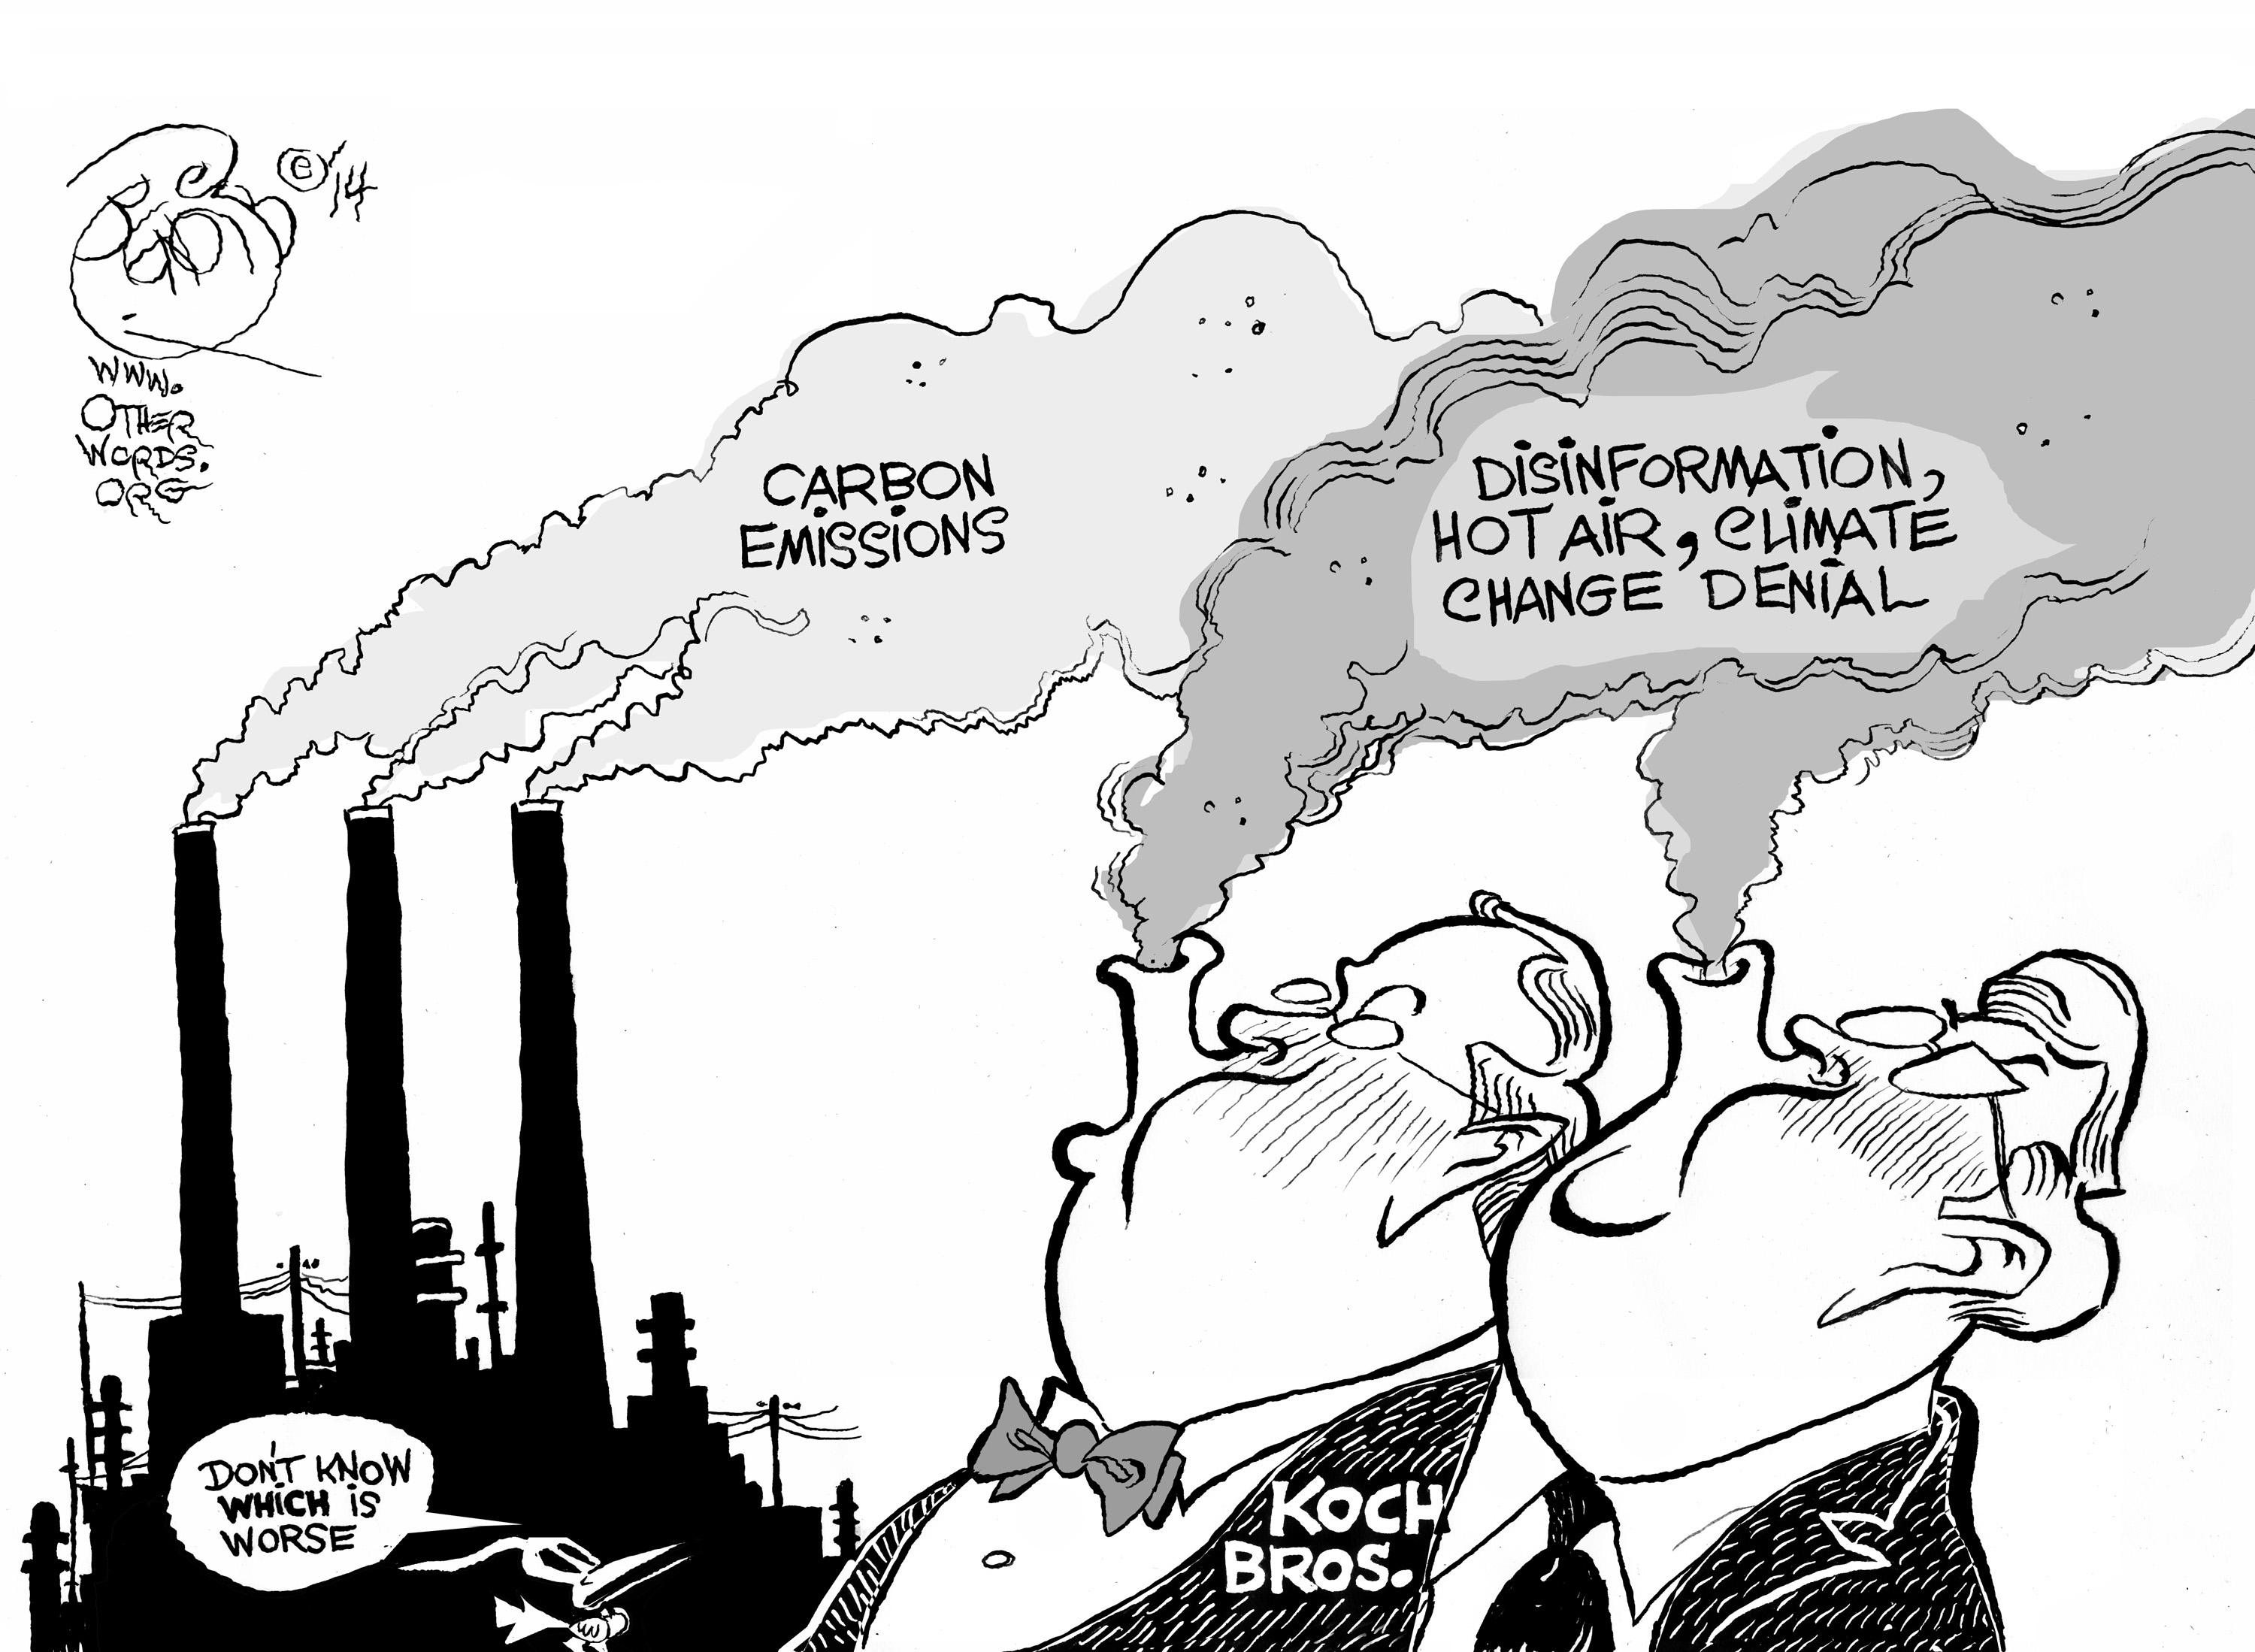 Speak Out Epa Hearing On Carbon Pollution Standard